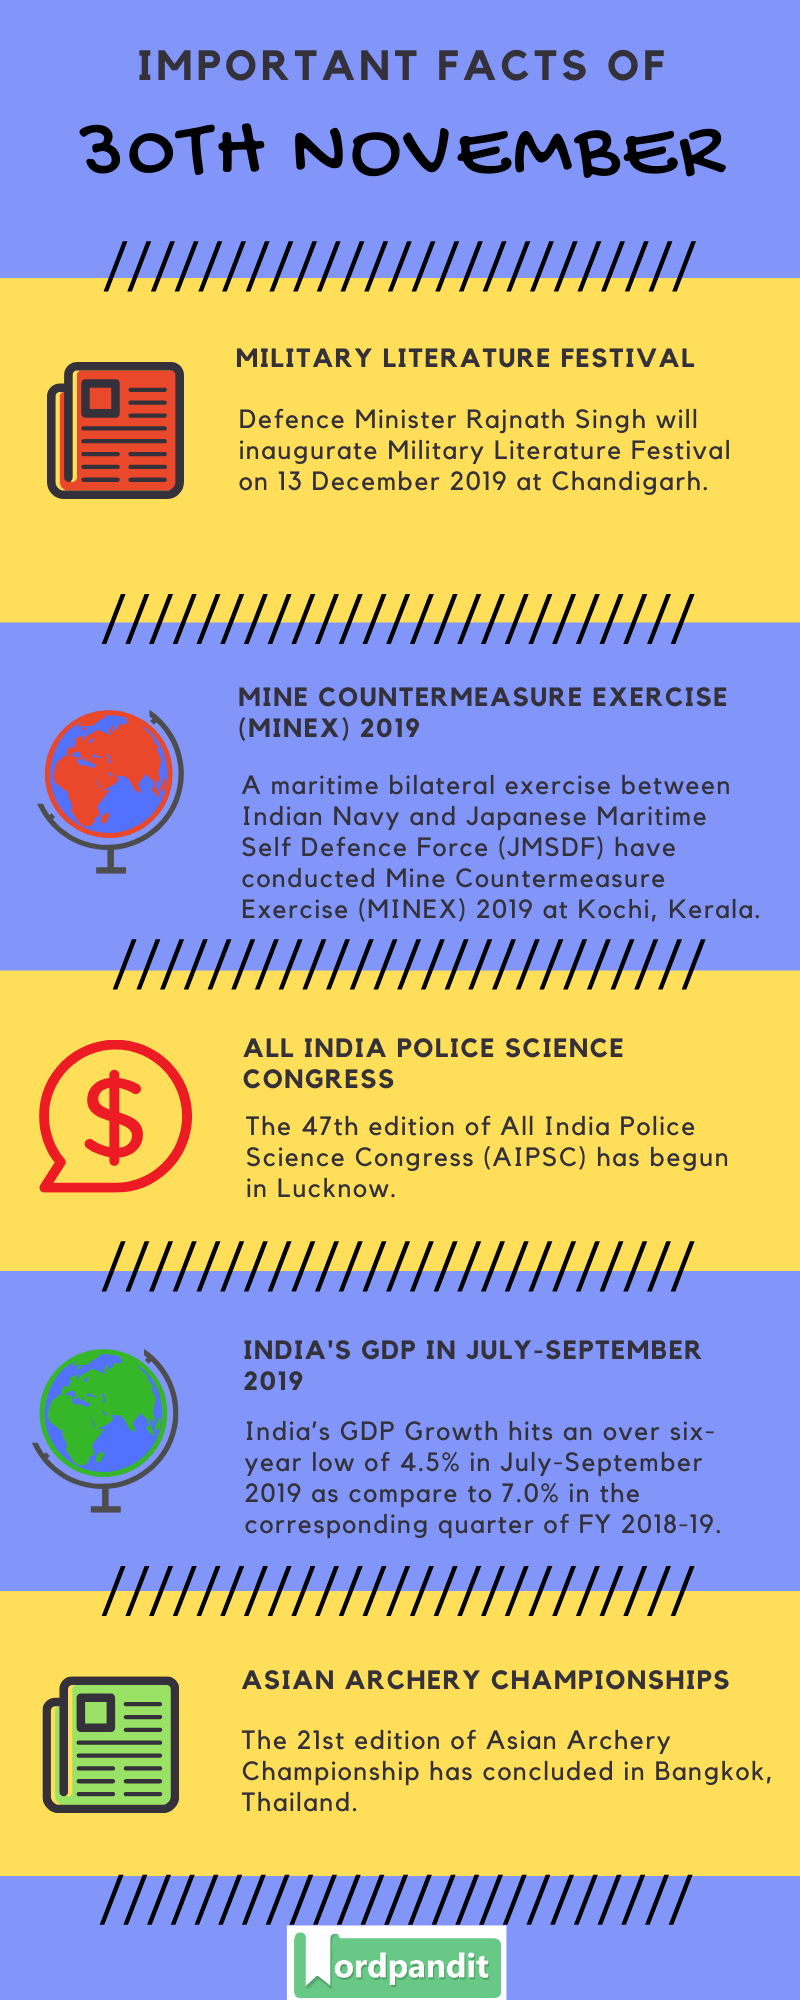 Daily Current Affairs 30 November 2019 Current Affairs Quiz 30 November 2019 Current Affairs Infographic